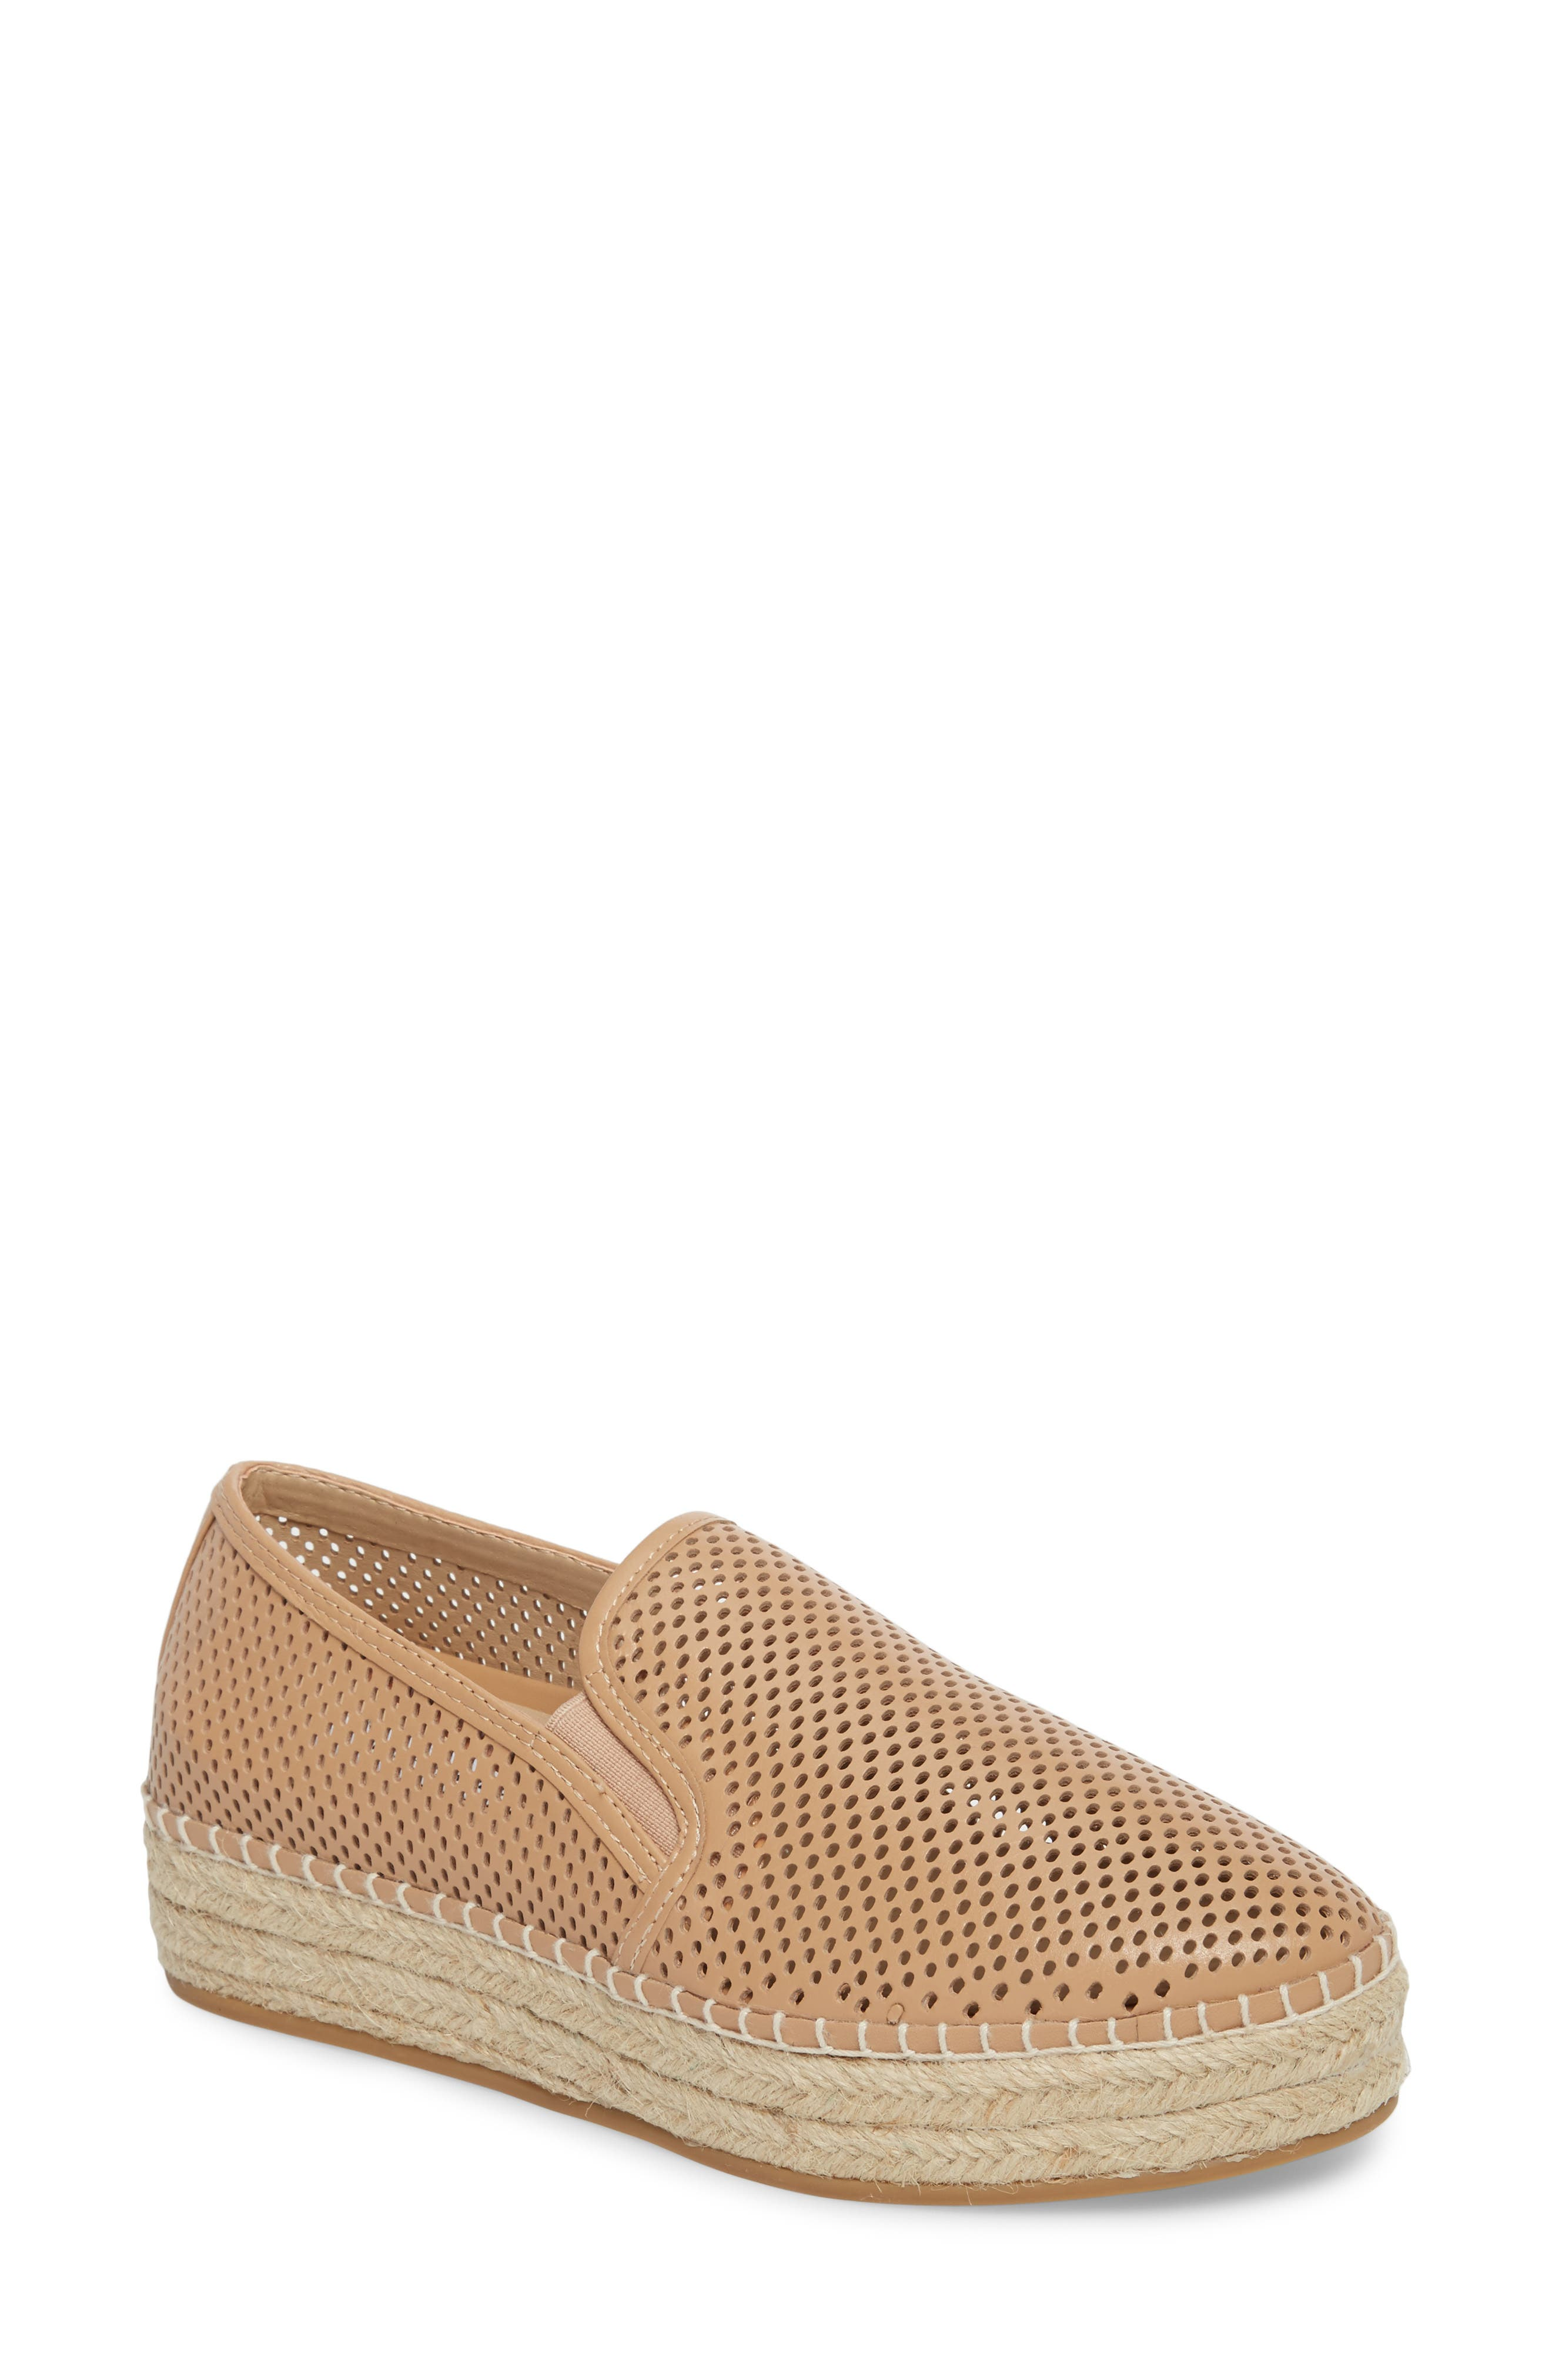 Wright Perforated Platform Espadrille,                             Main thumbnail 1, color,                             Natural Leather